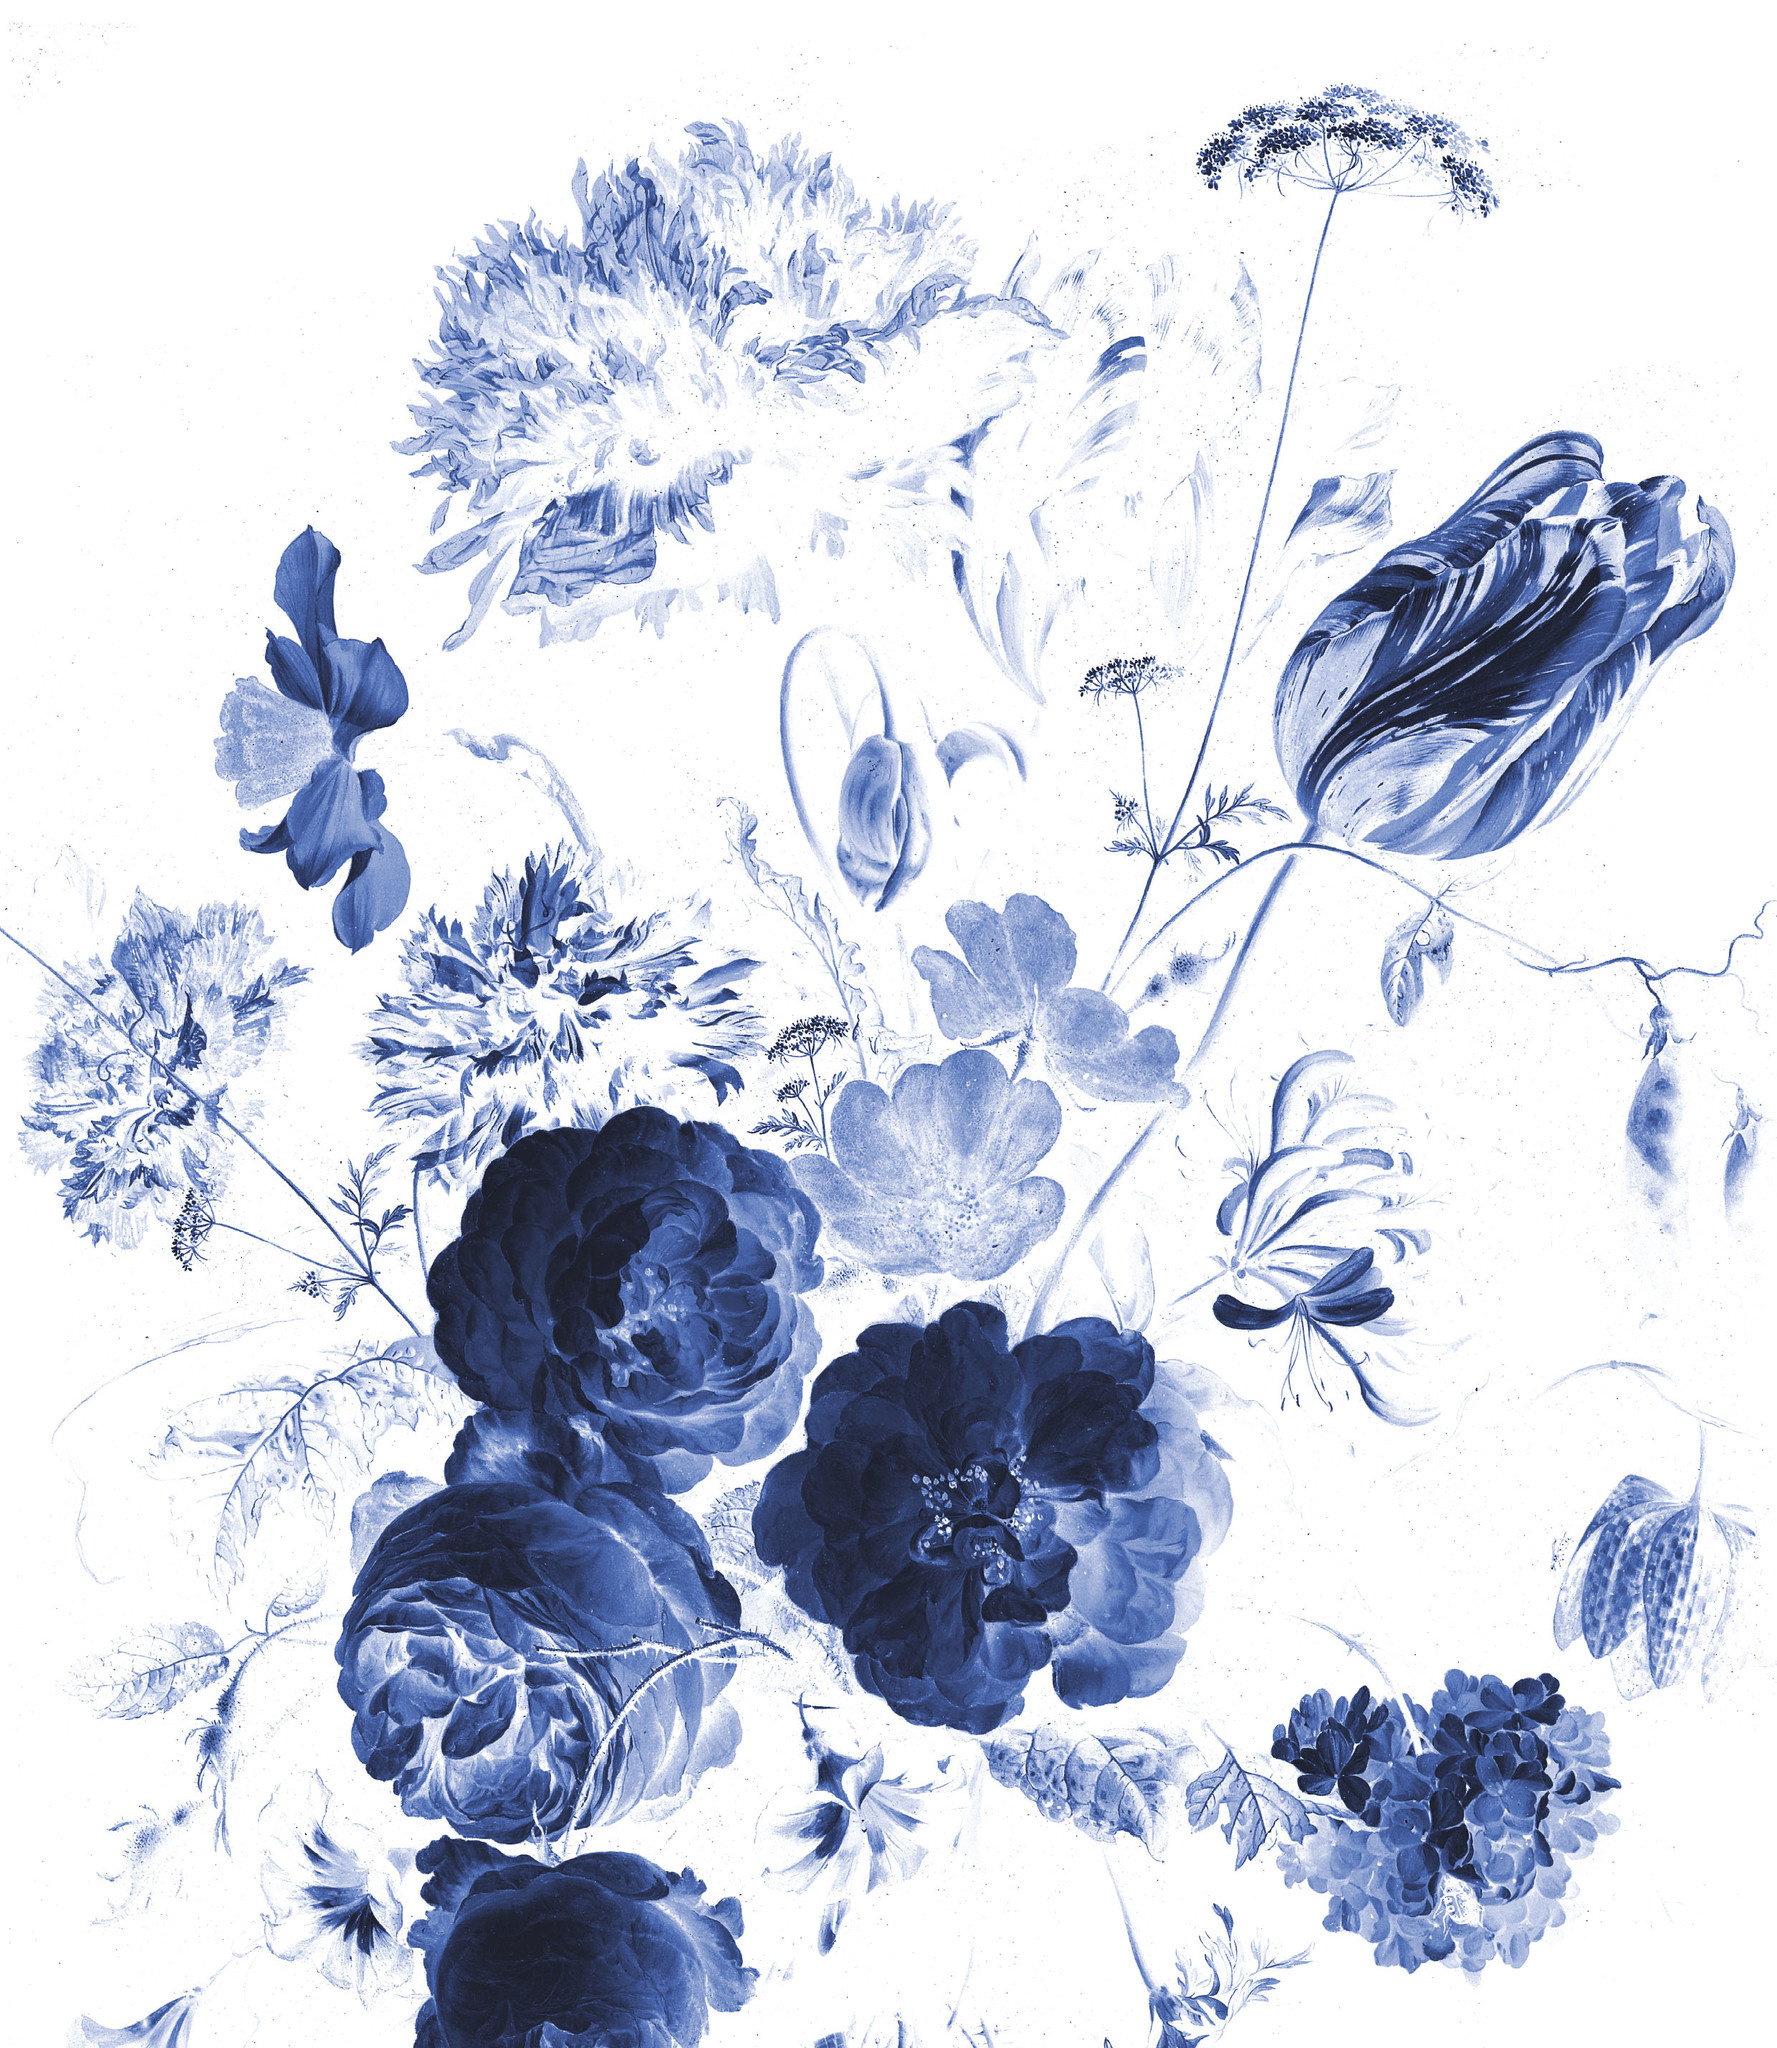 Behang Royal Blue Flowers XL 190x220cm-1